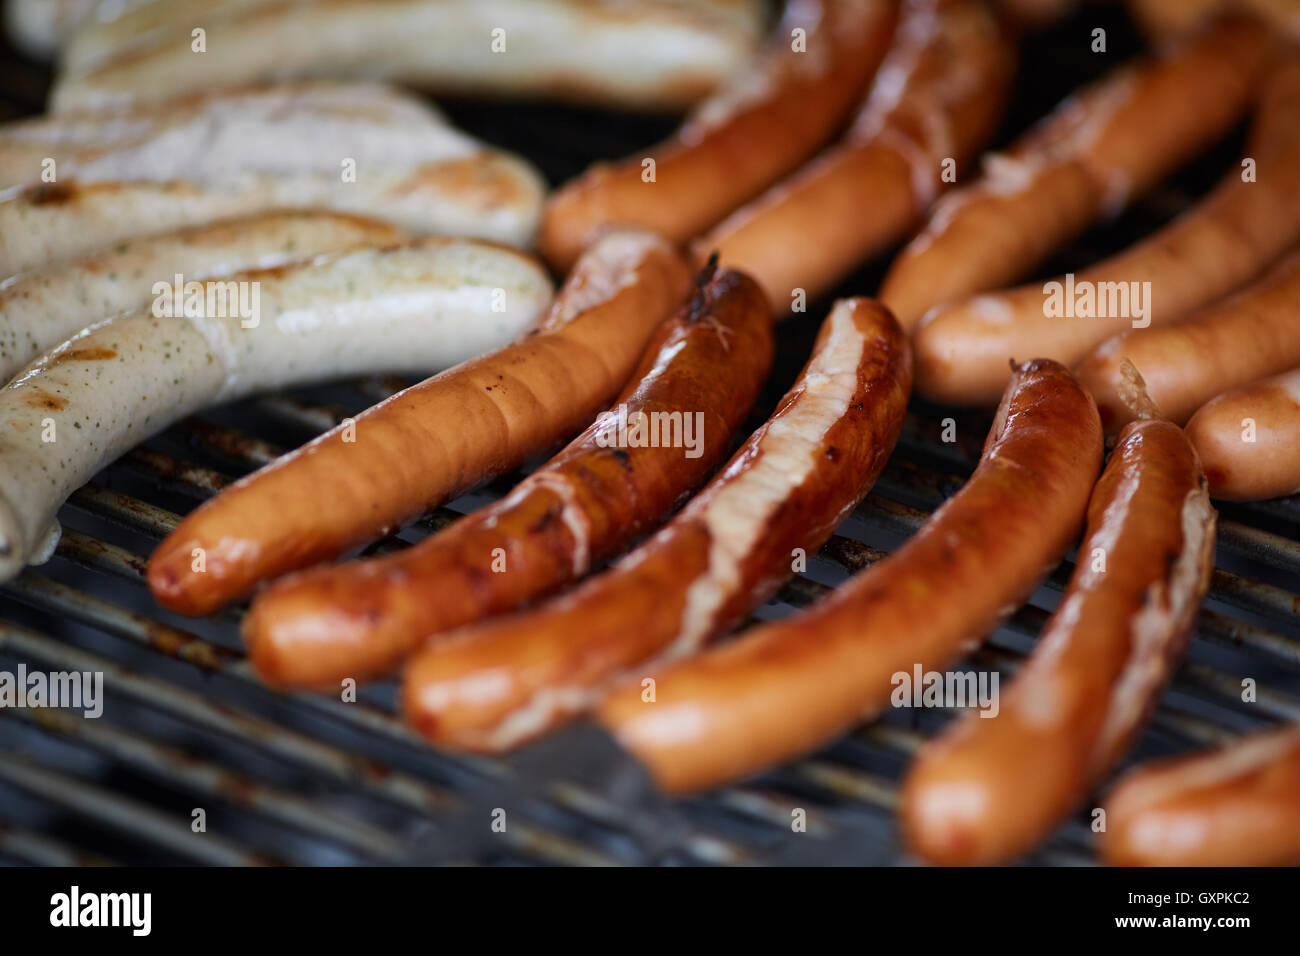 Bolton Food and Drink Festival  german germany sausage bbq tale away food cooking Frankfurter Rindswurst beef grilled - Stock Image